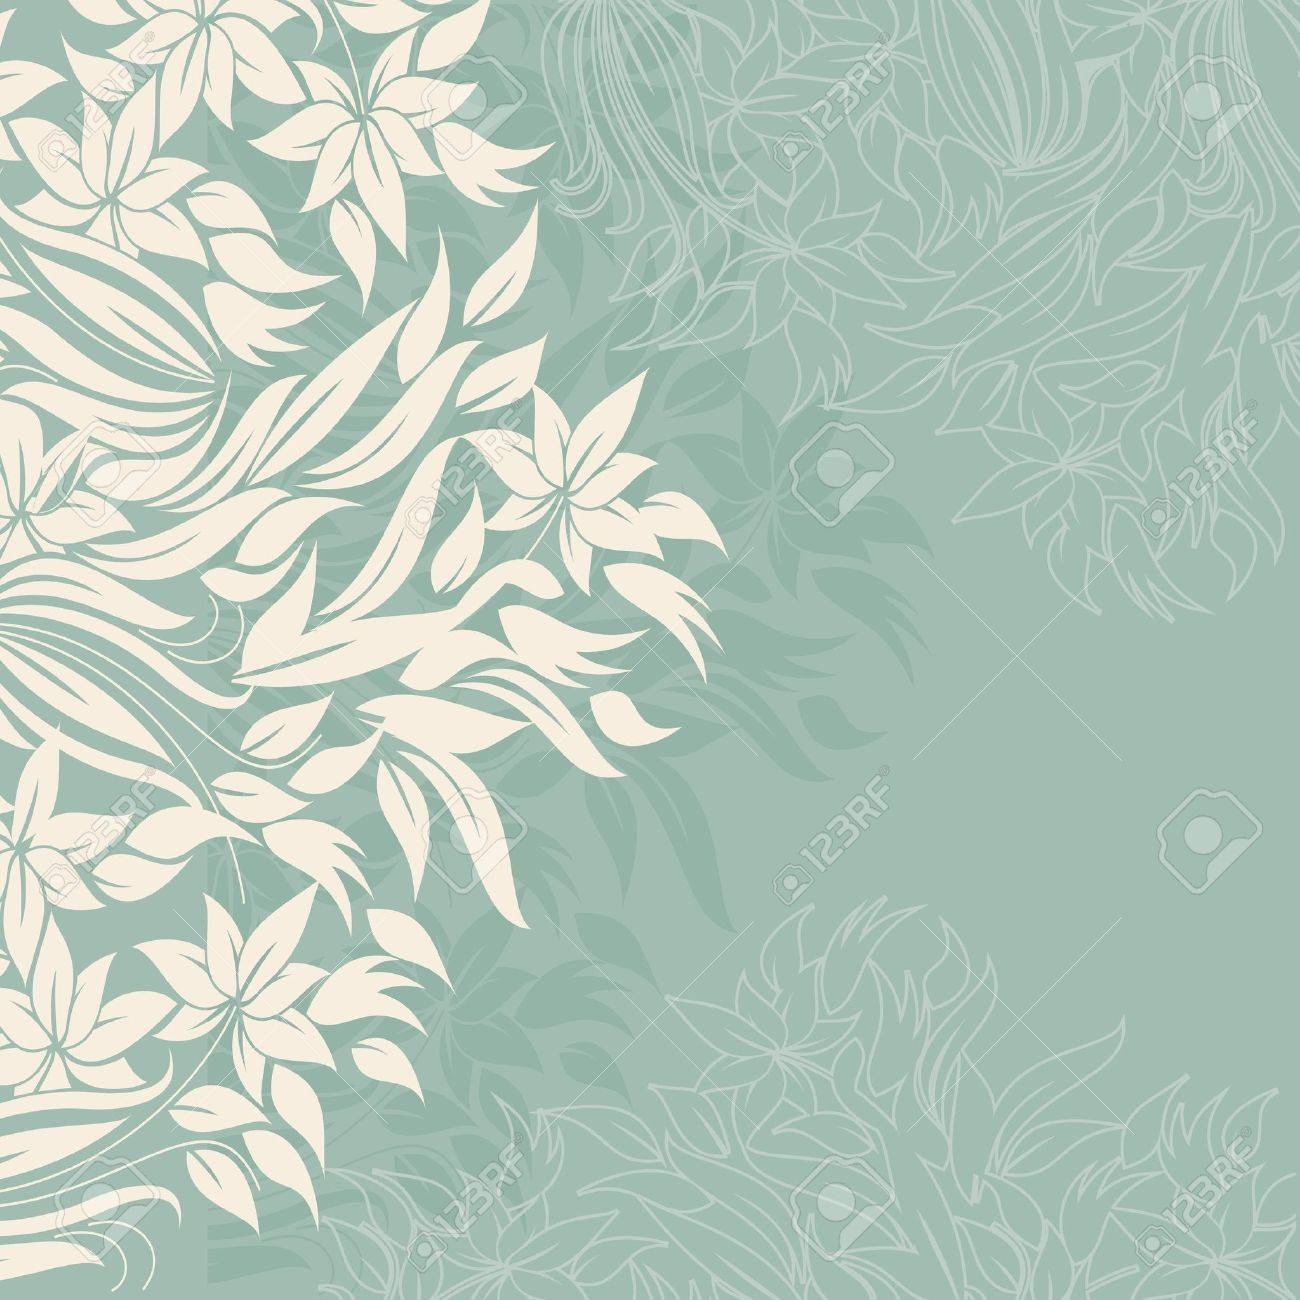 White curtain wallpaper - White Curtain Template Frame Design For Greeting Card With White Flowers